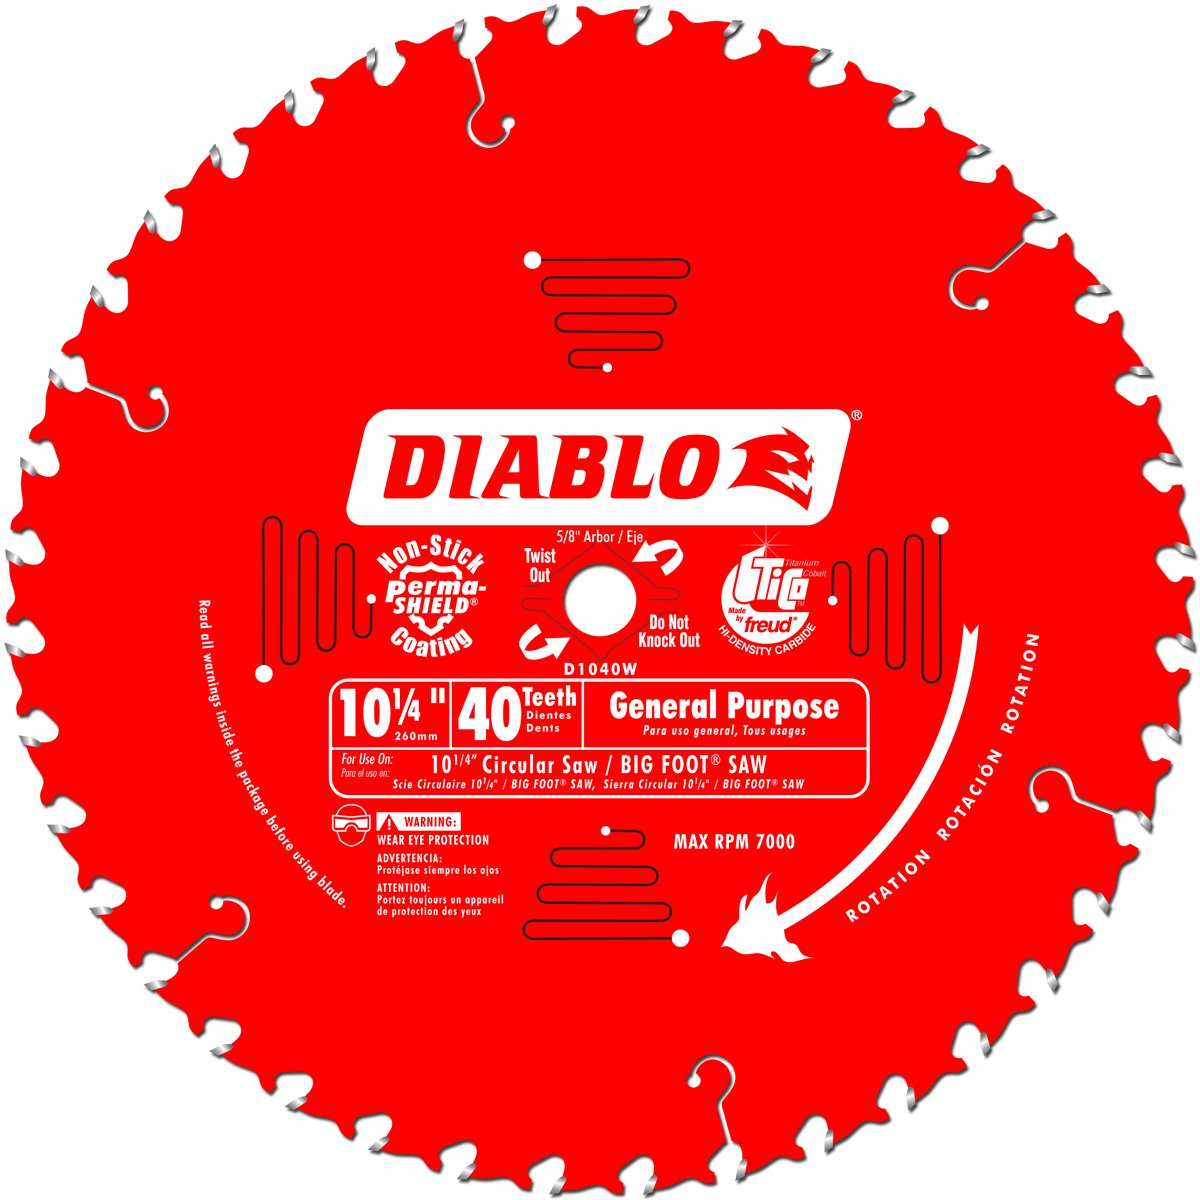 Freud D1040W Diablo 10-1/4-Inch 40 Tooth ATB General Purpose Saw Blade with 5/8-Inch and Diamond Knockout Arbor, Multi